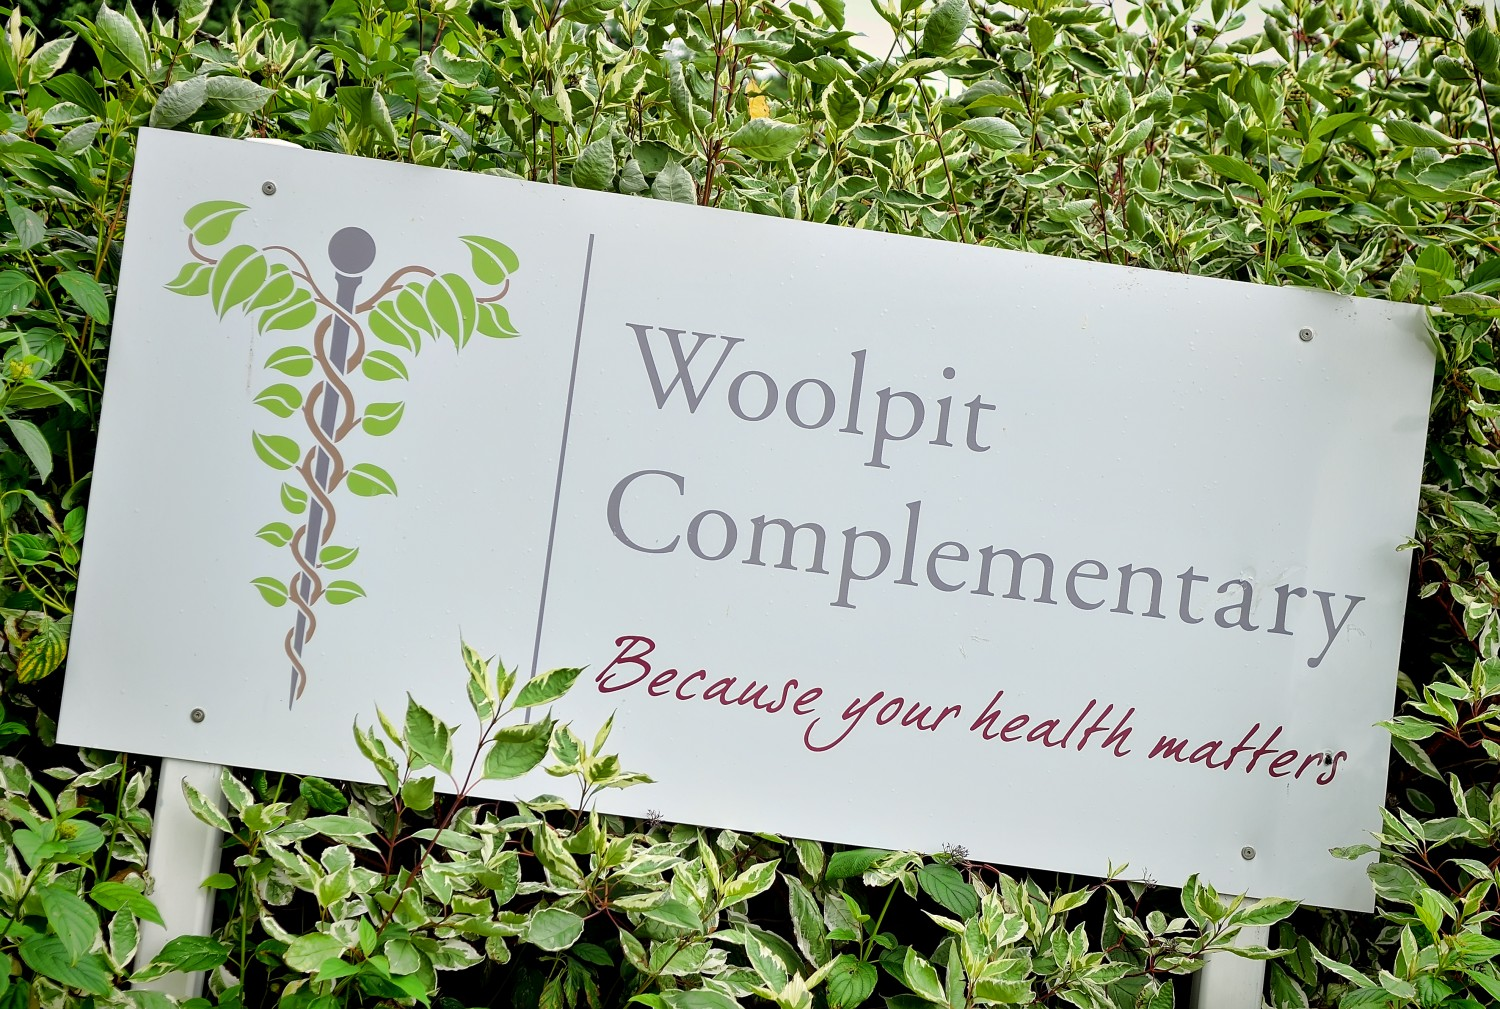 Woolpit Complementary, Bury St Edmunds, Stowmarket